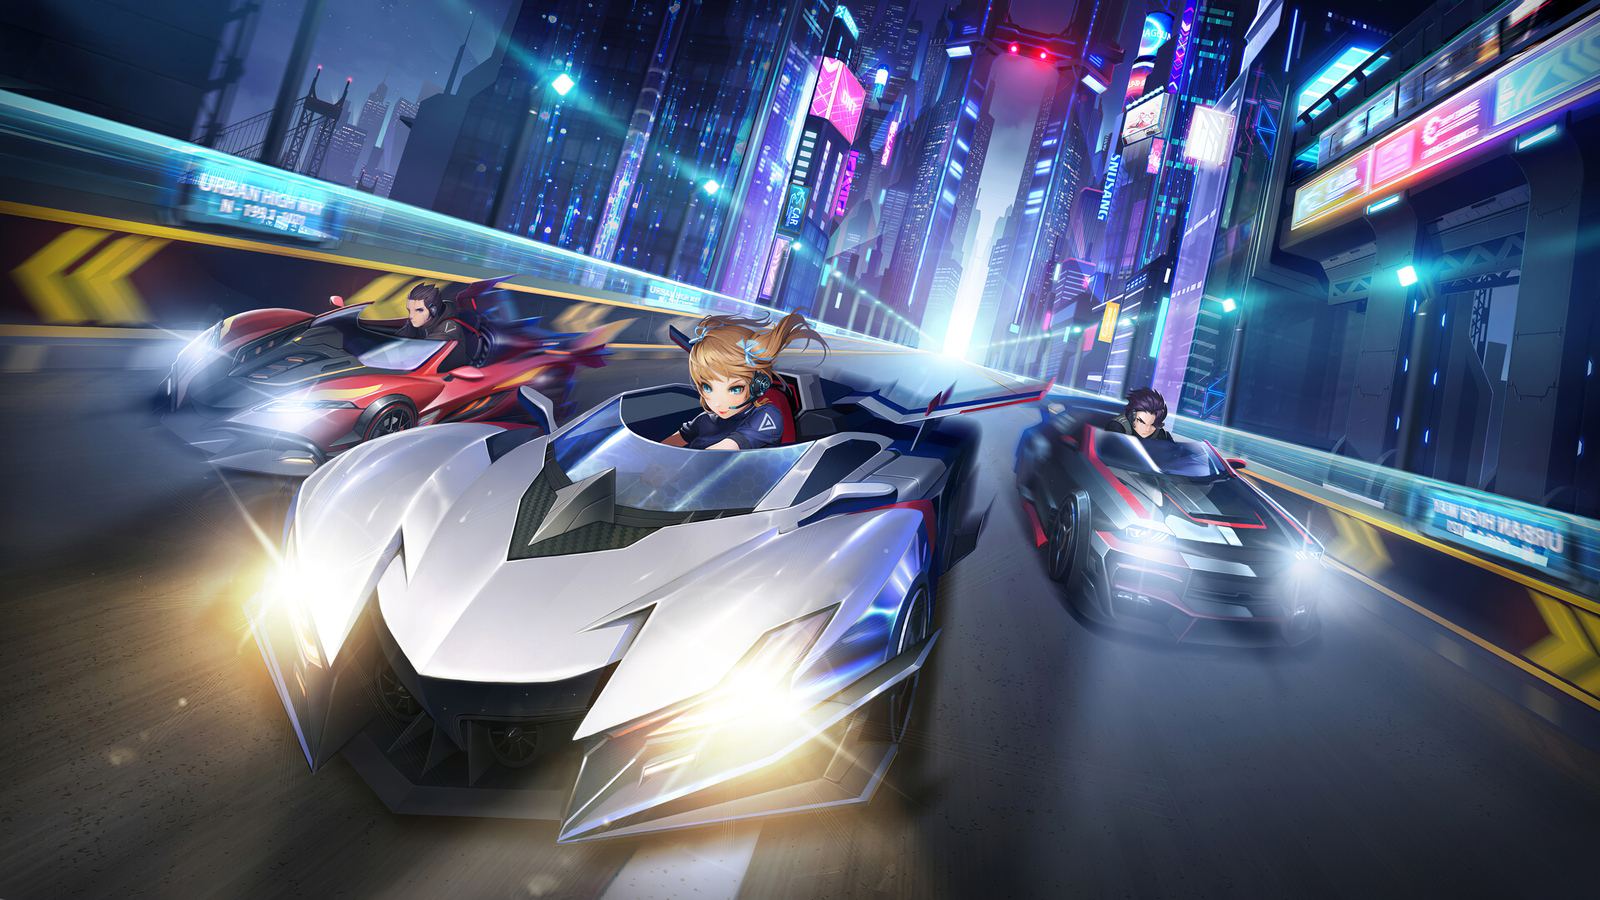 city-street-racing-anime-4k-lb.jpg